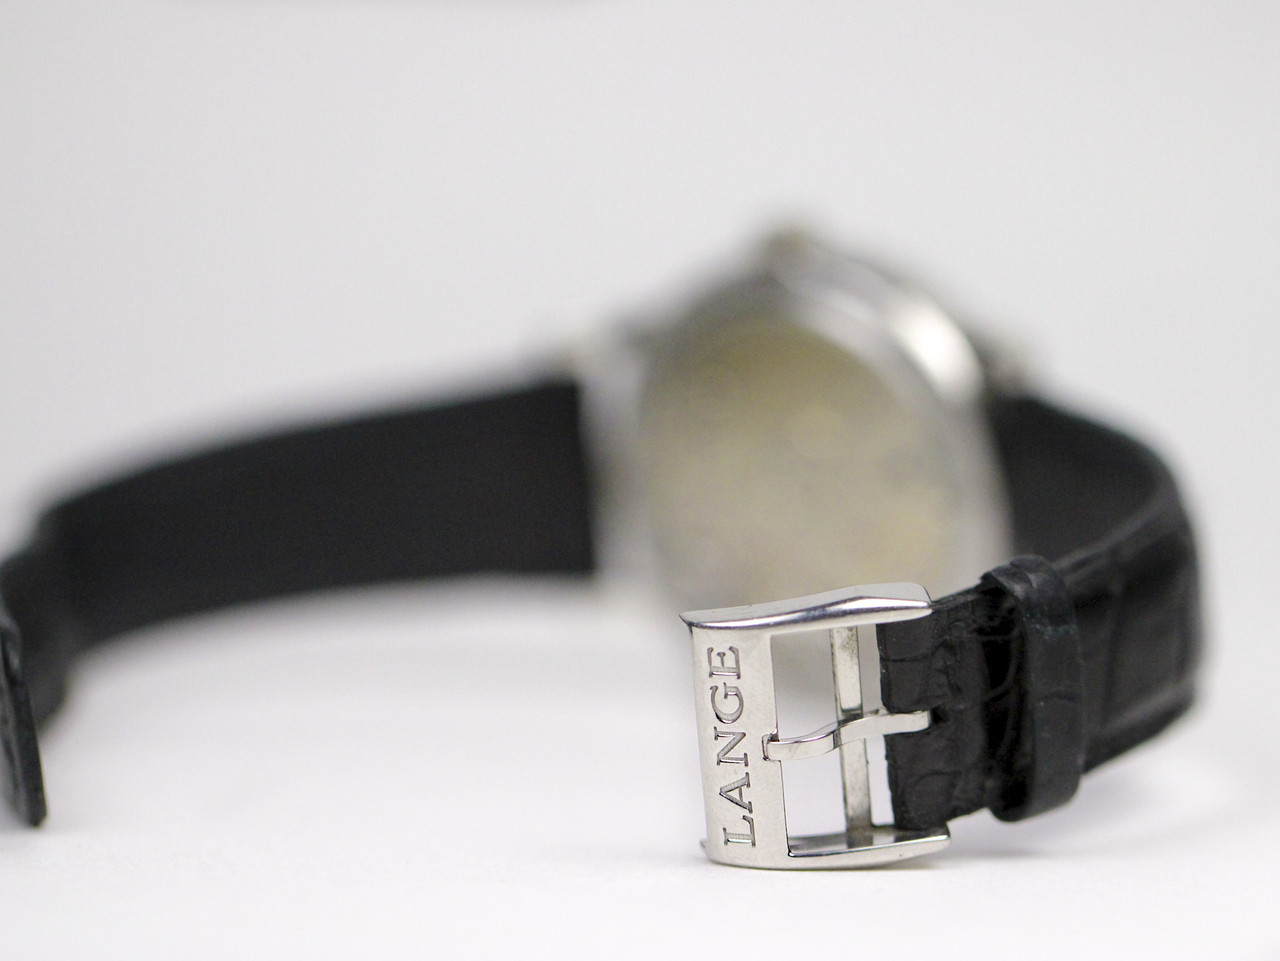 Platinum Tang Buckle - A Lange & Sohne Watch - Lange 1 Black Darth Dial 101.035 pre-owned for sale Legend of Time - Chicago Watch Center